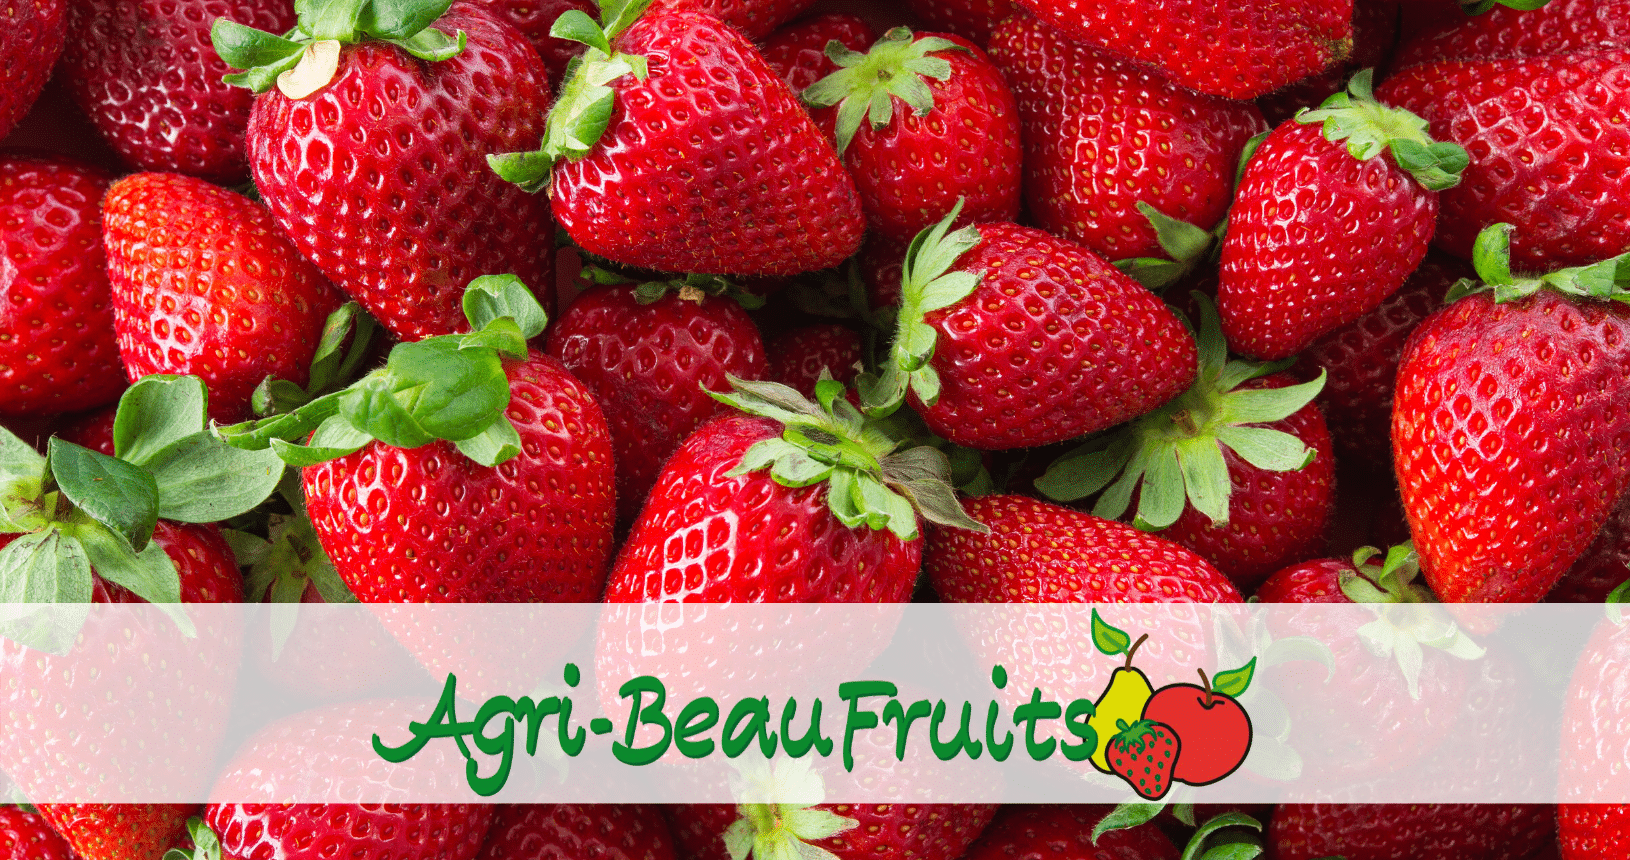 Agri Beaufruits